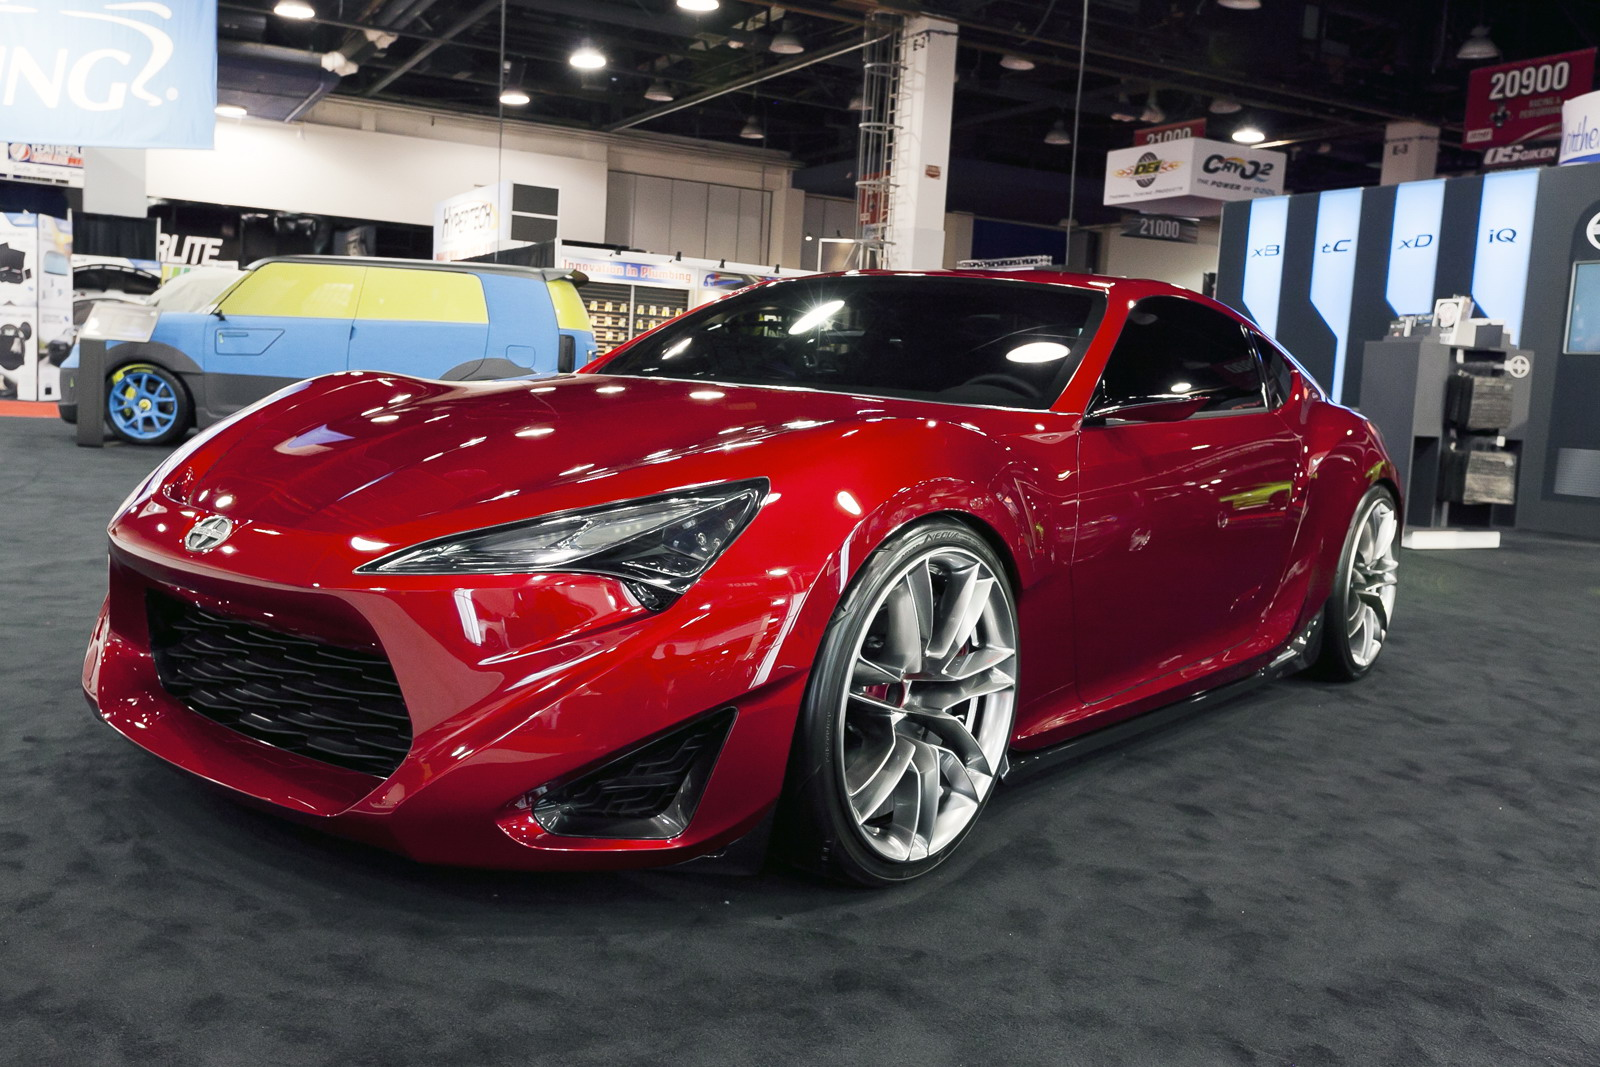 2011 Scion FRS Concept Top Speed - Gsiders.co